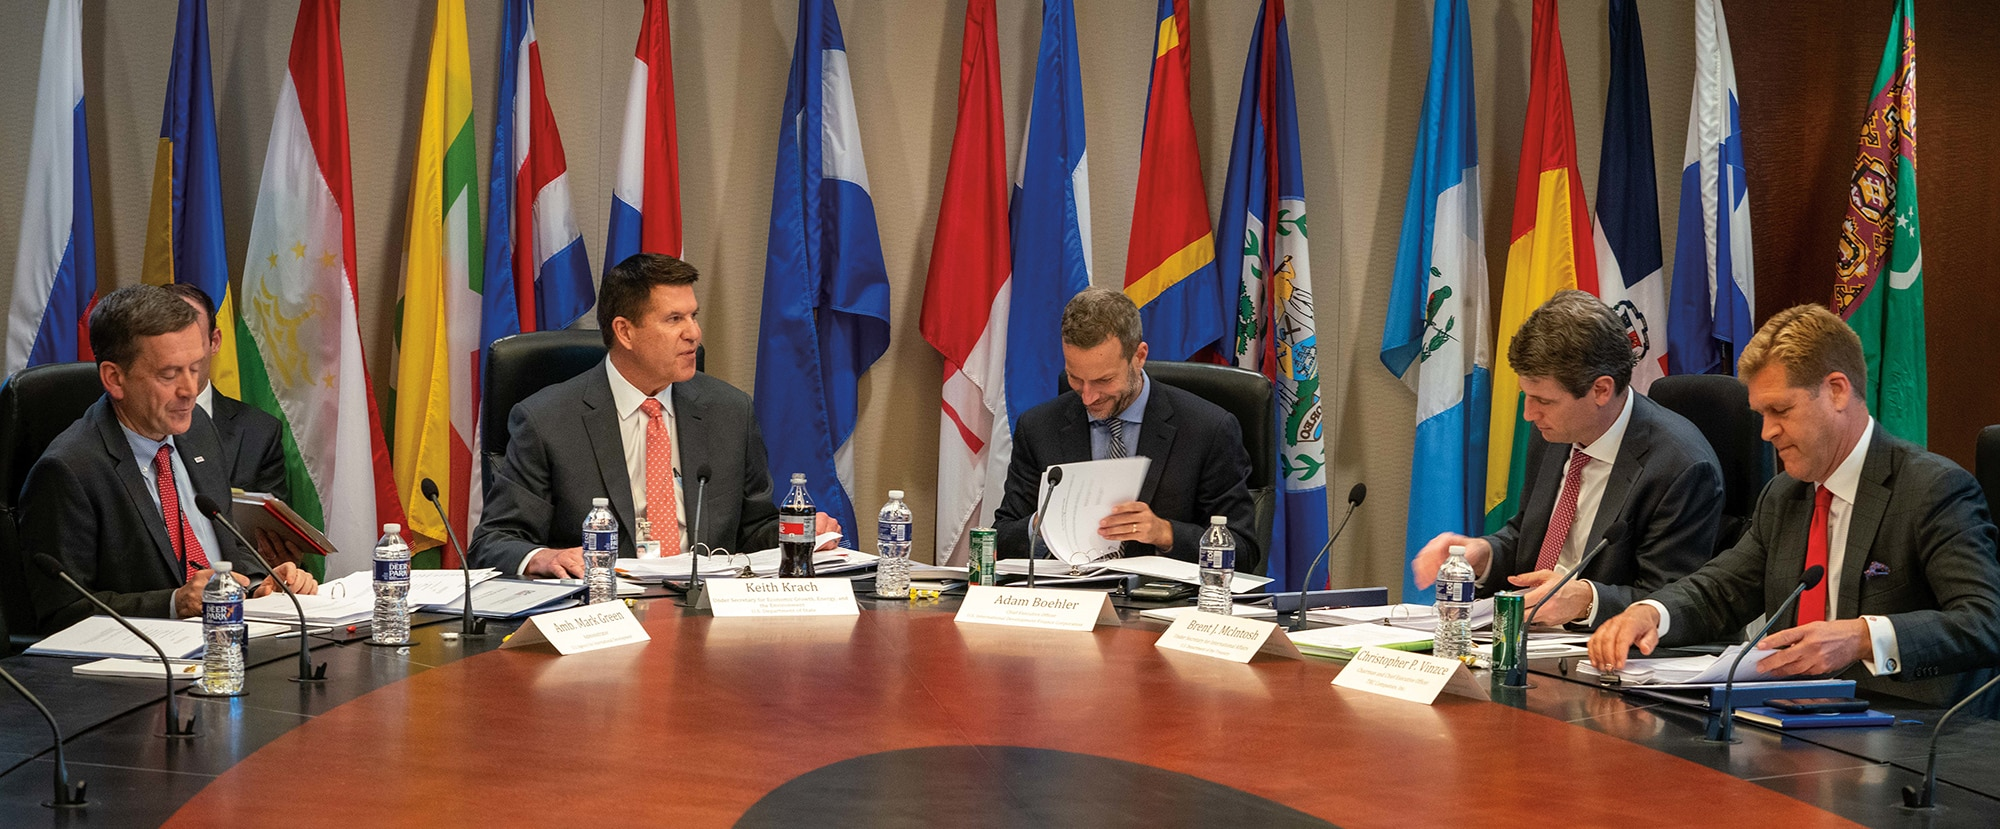 Photo showing Under Secretary of State Keith J. Krach participating in the U.S. International Development Finance Corporation board meeting in Washington, D.C., March 11, 2020. [Department of State]